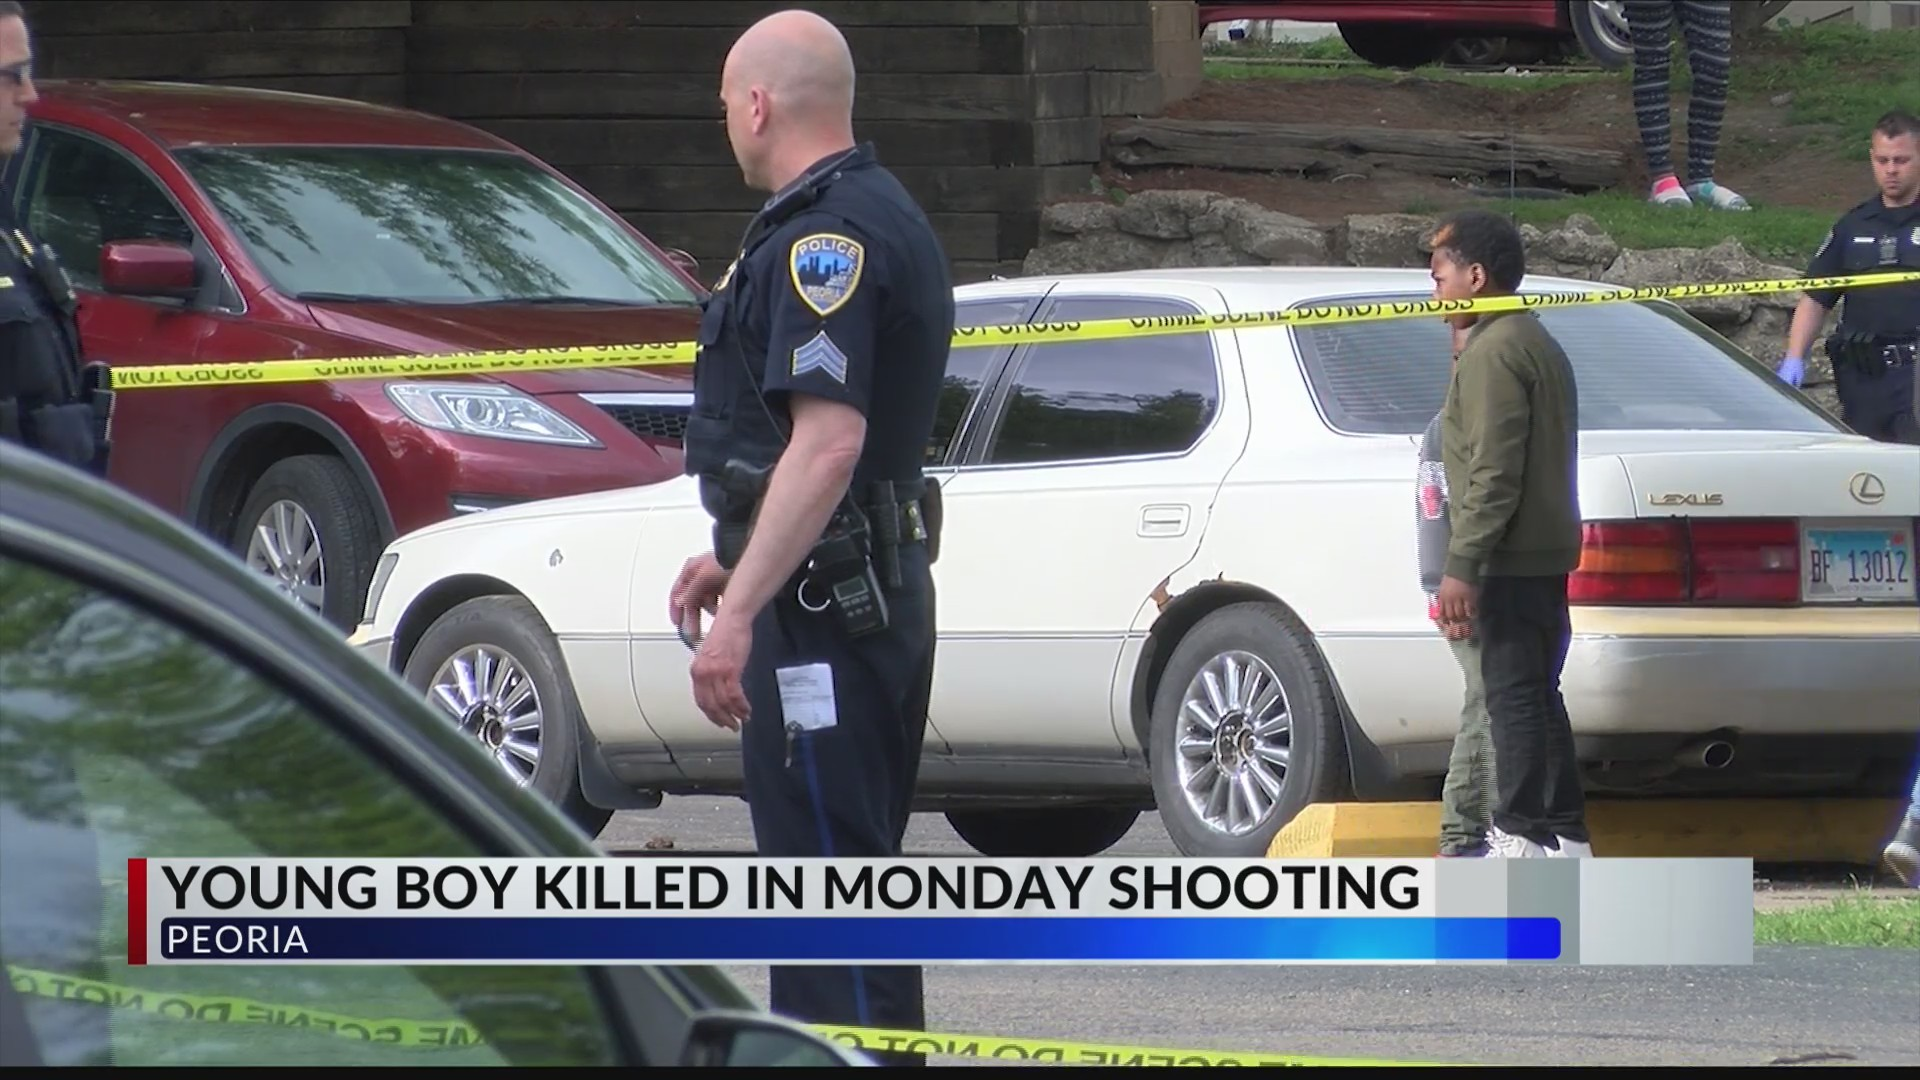 Young boy shot and killed